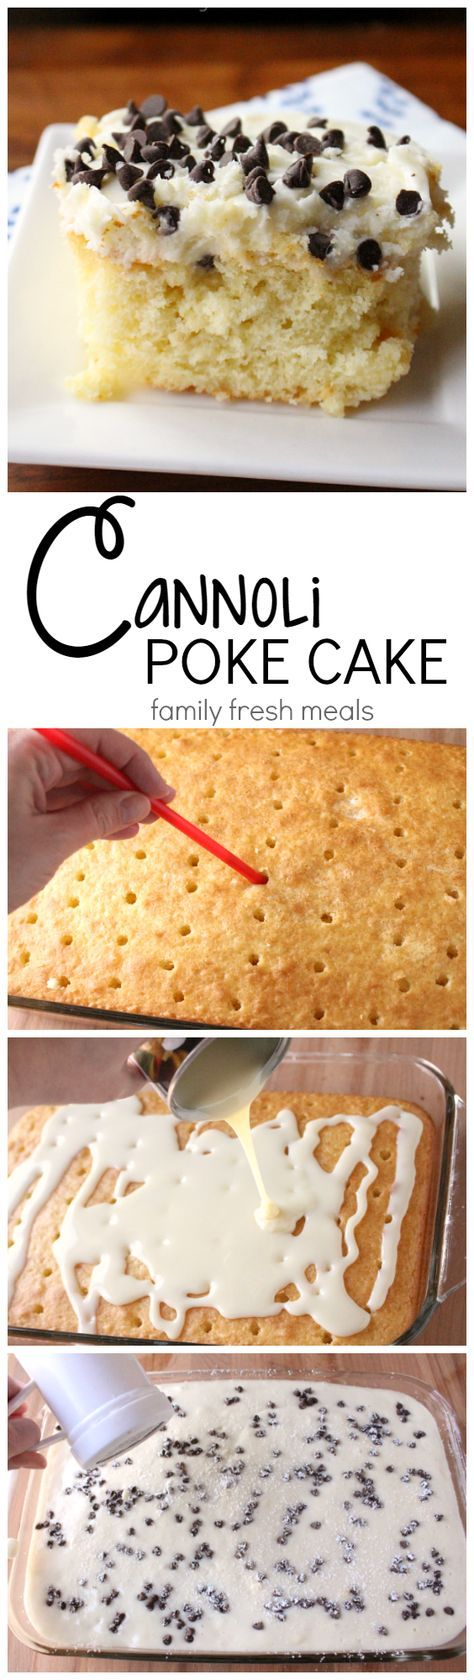 Cannoli Poke Cake Recipe. All you do is start with a boxed white cake, poke those holes, and smother it with condensed milk, sweetened creamy cannoli filling! This is not just a cake-it's dessert nirvana. #mascarpone